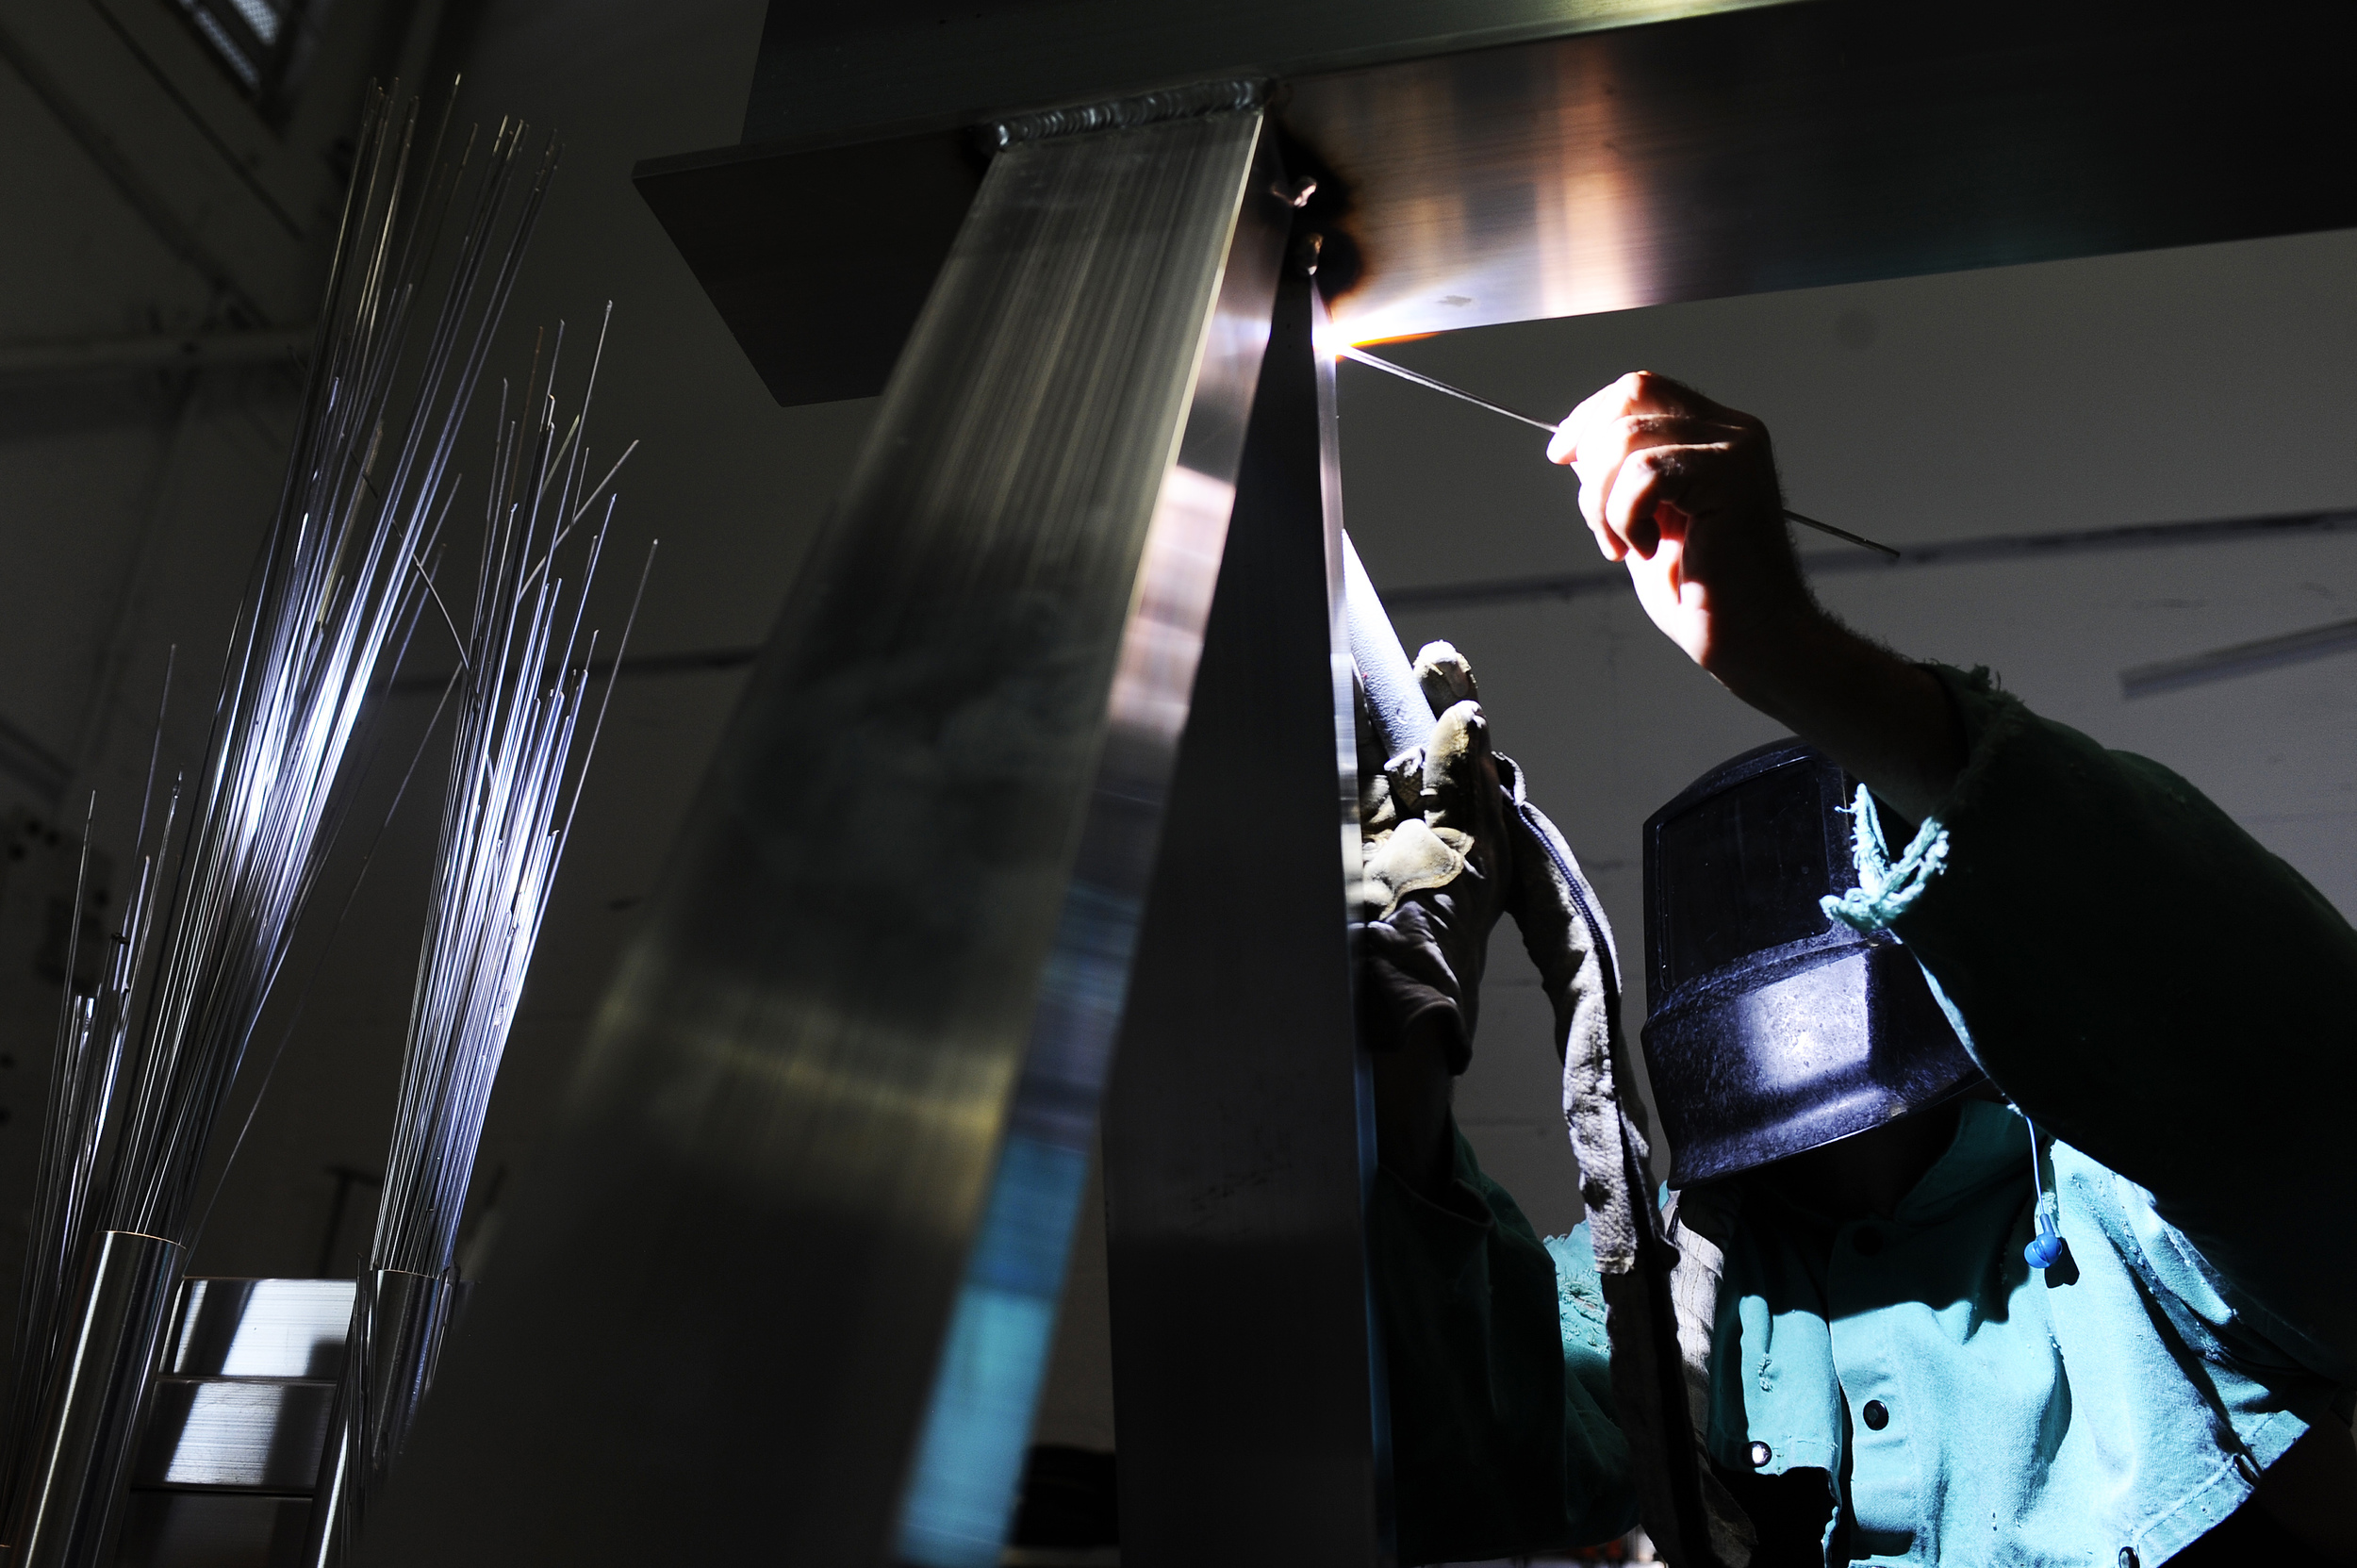 AccuDock worker Lou Jenks welds together pieces for a new floating dock inside their warehouse located in Pompano Beach, Florida. The family owned businessproduces floating docks, floating work platforms, swimming docks and related equipment for the recreational marine industry and for residential use.